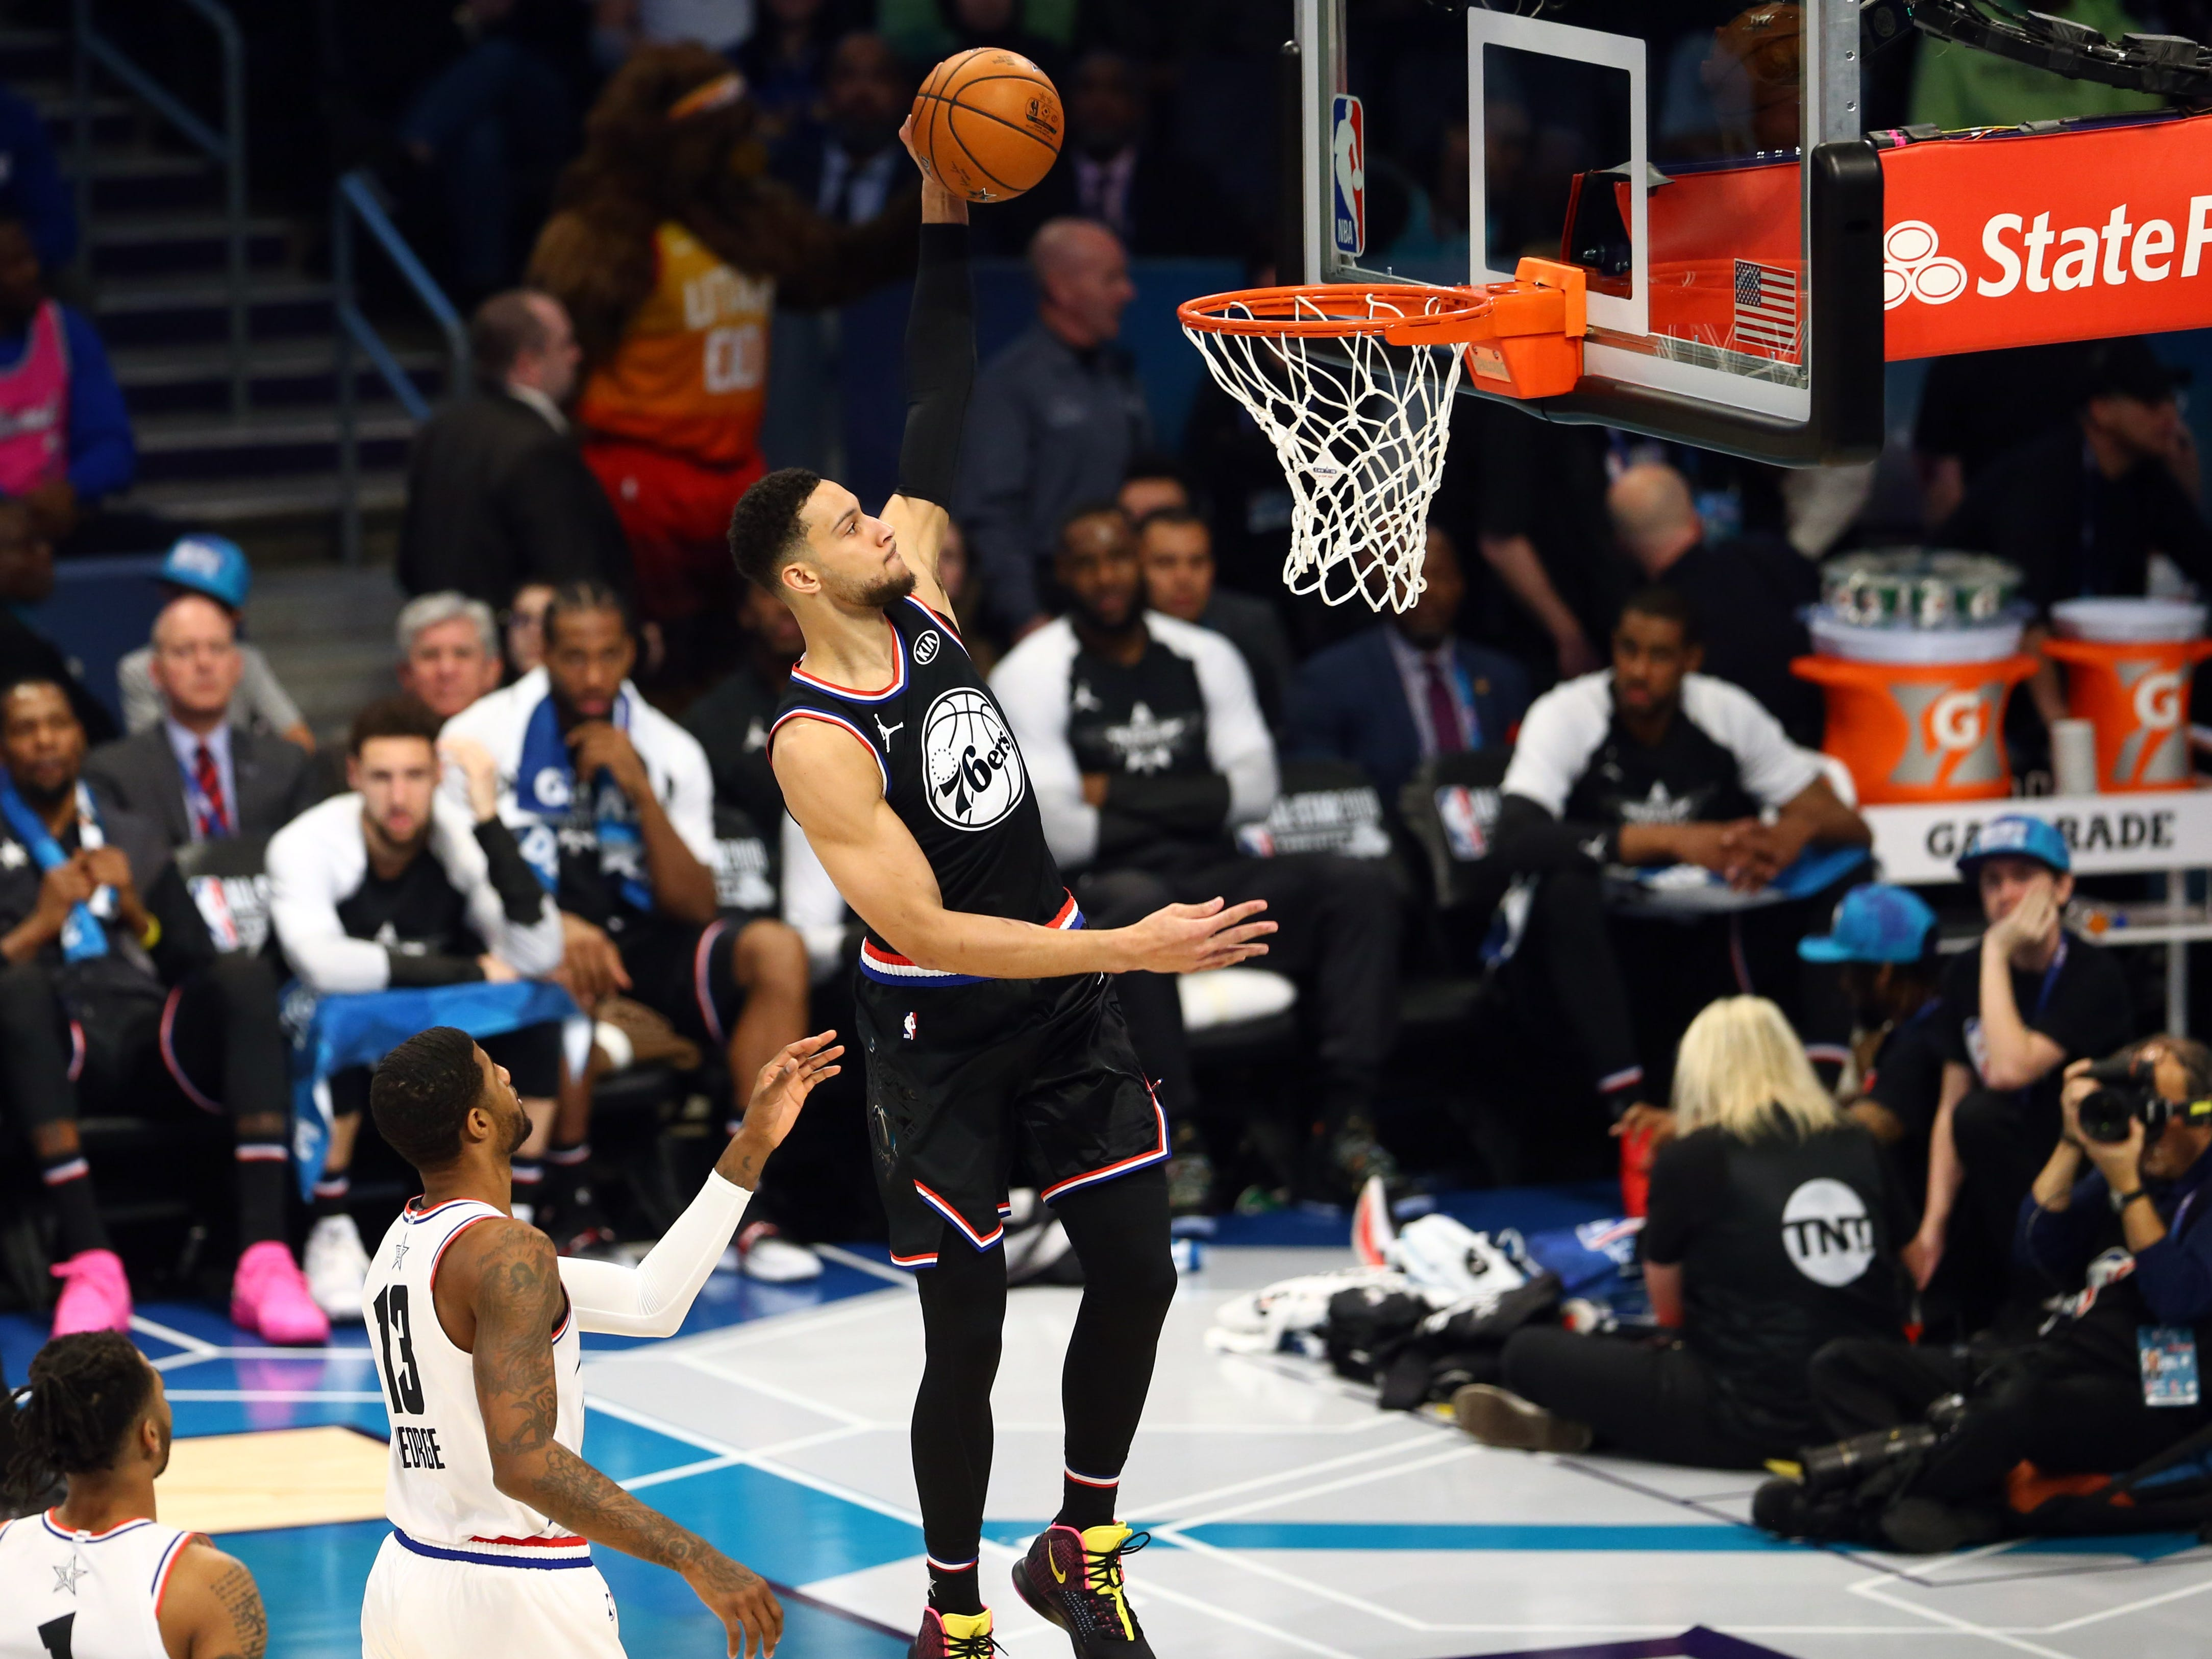 Ben Simmons soars for a dunk during the All-Star Game.